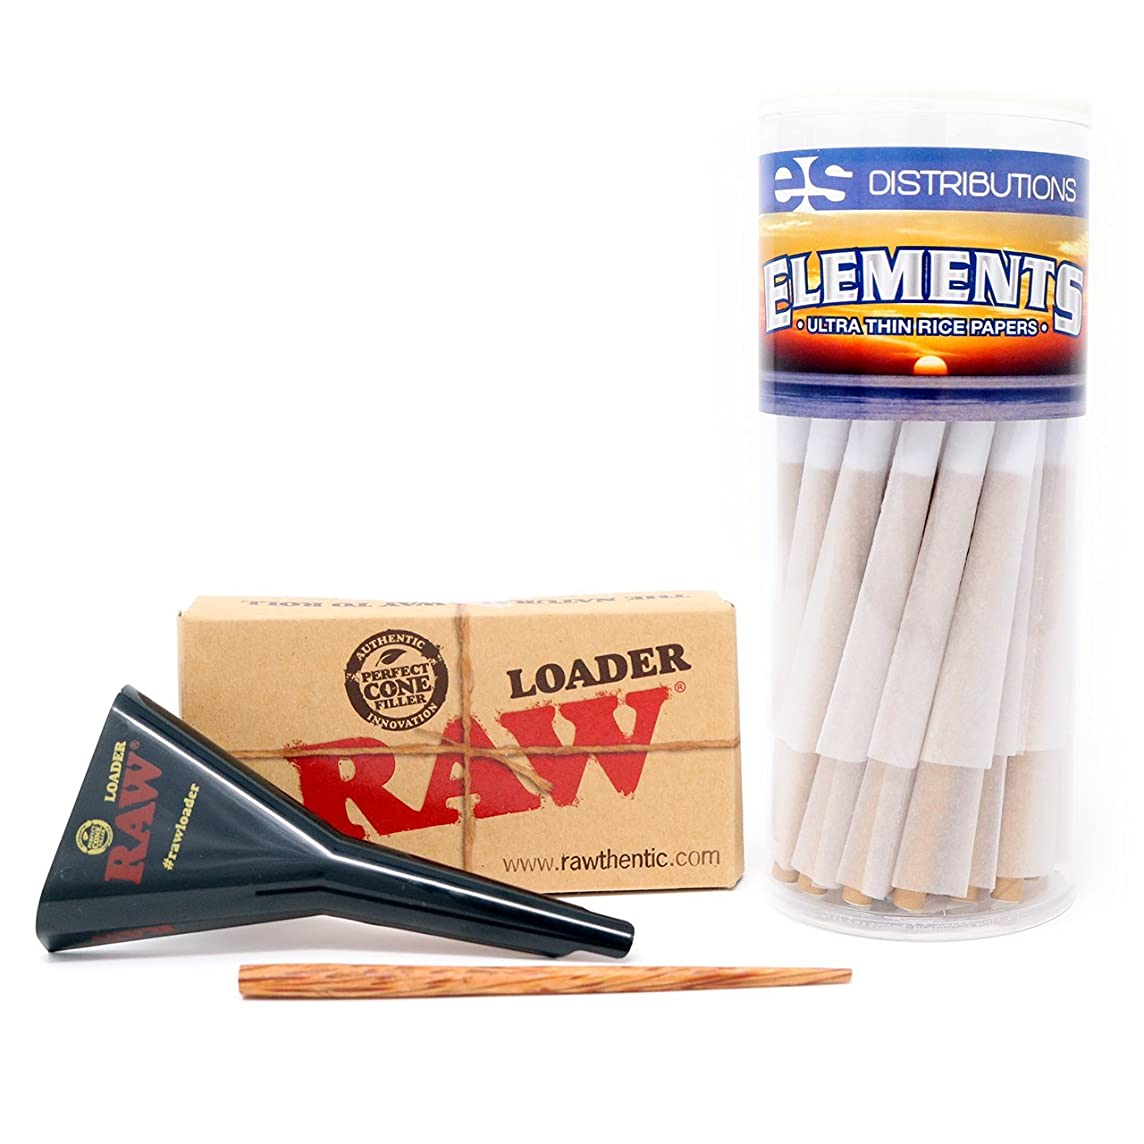 Elements Pre-Rolled Cones King Size Variation (50 Pack with Loader)